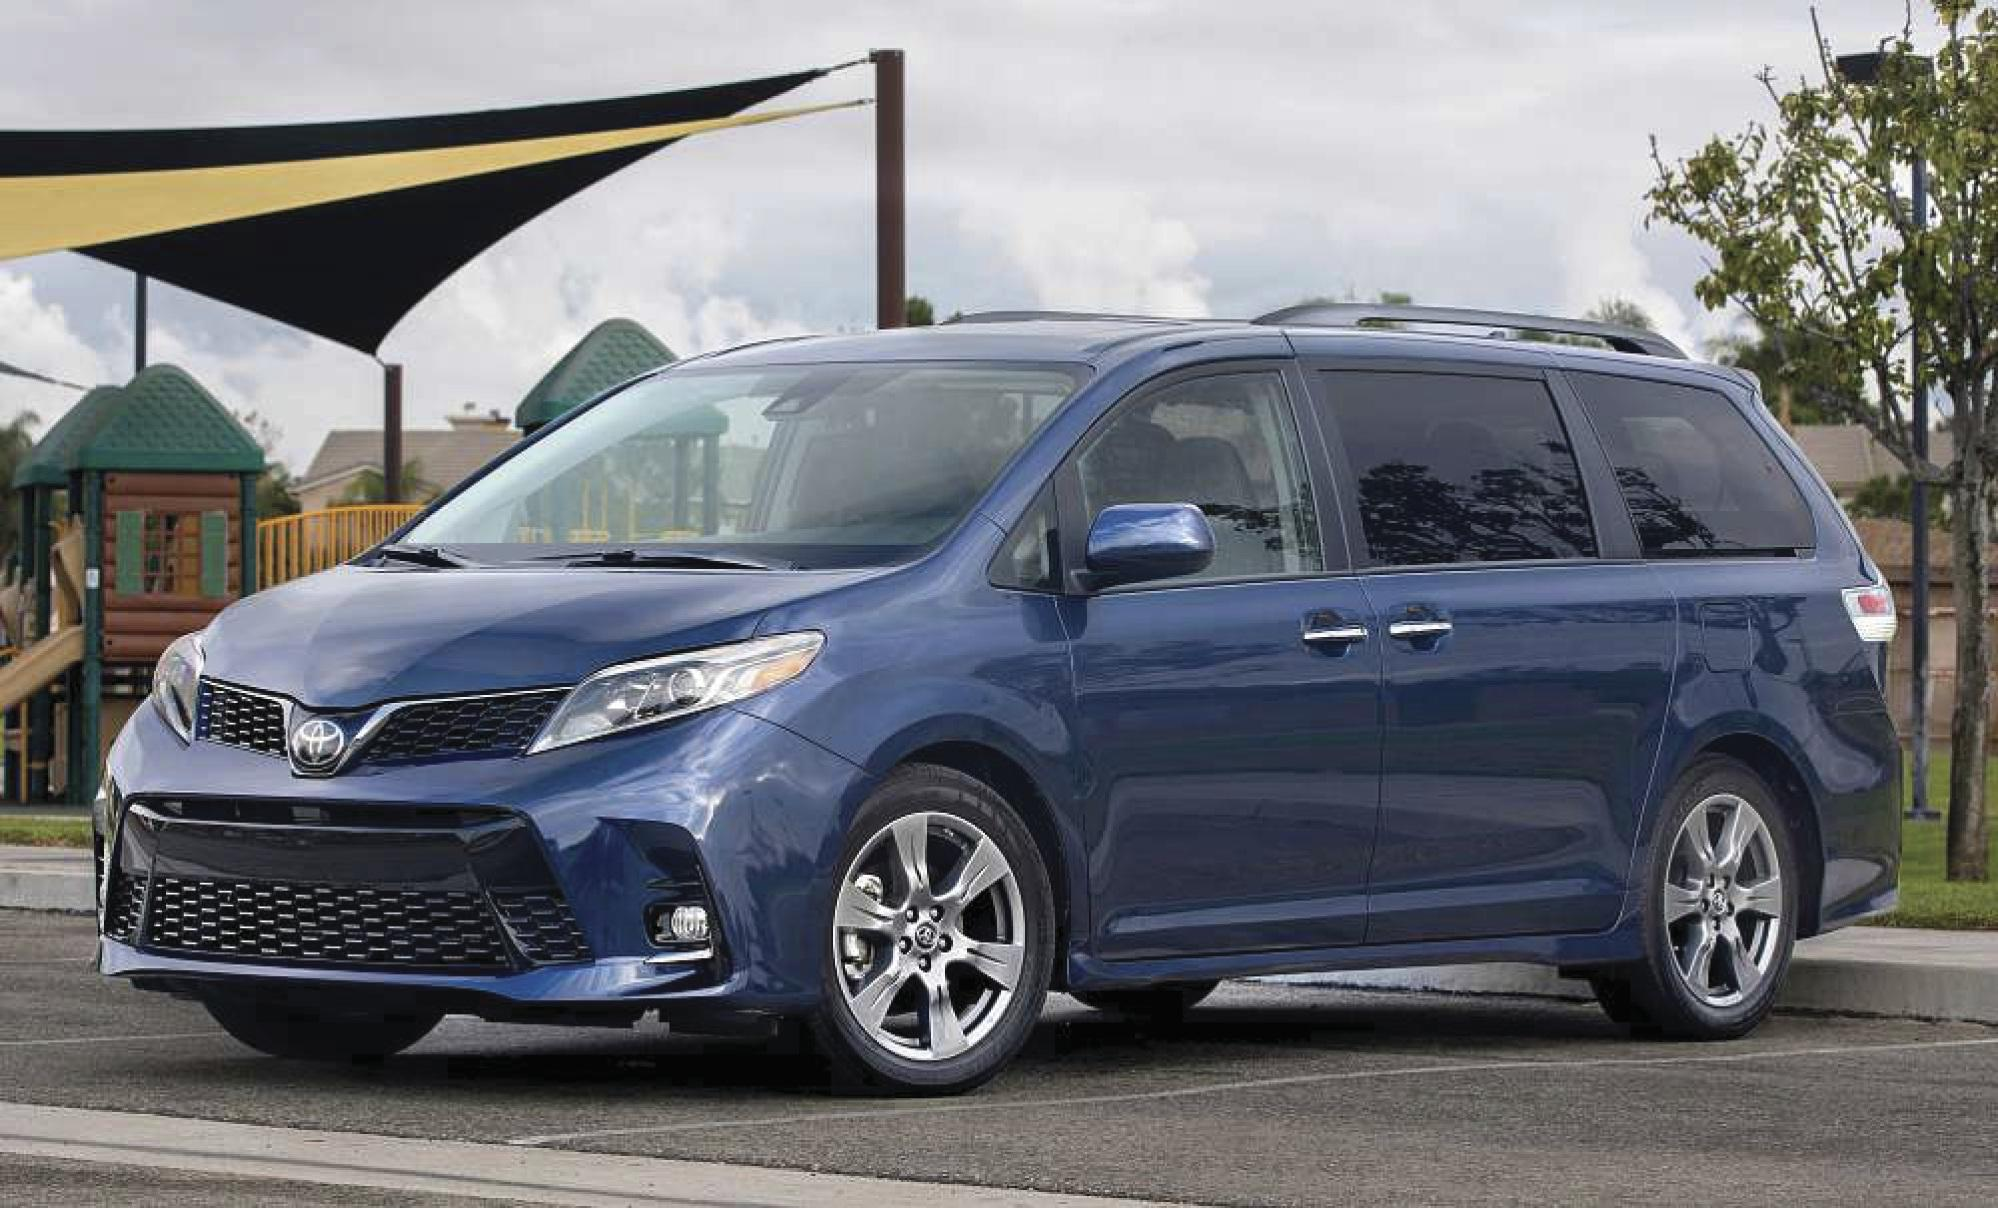 Toyota Sienna gets some upgrades for 2018, including new front end